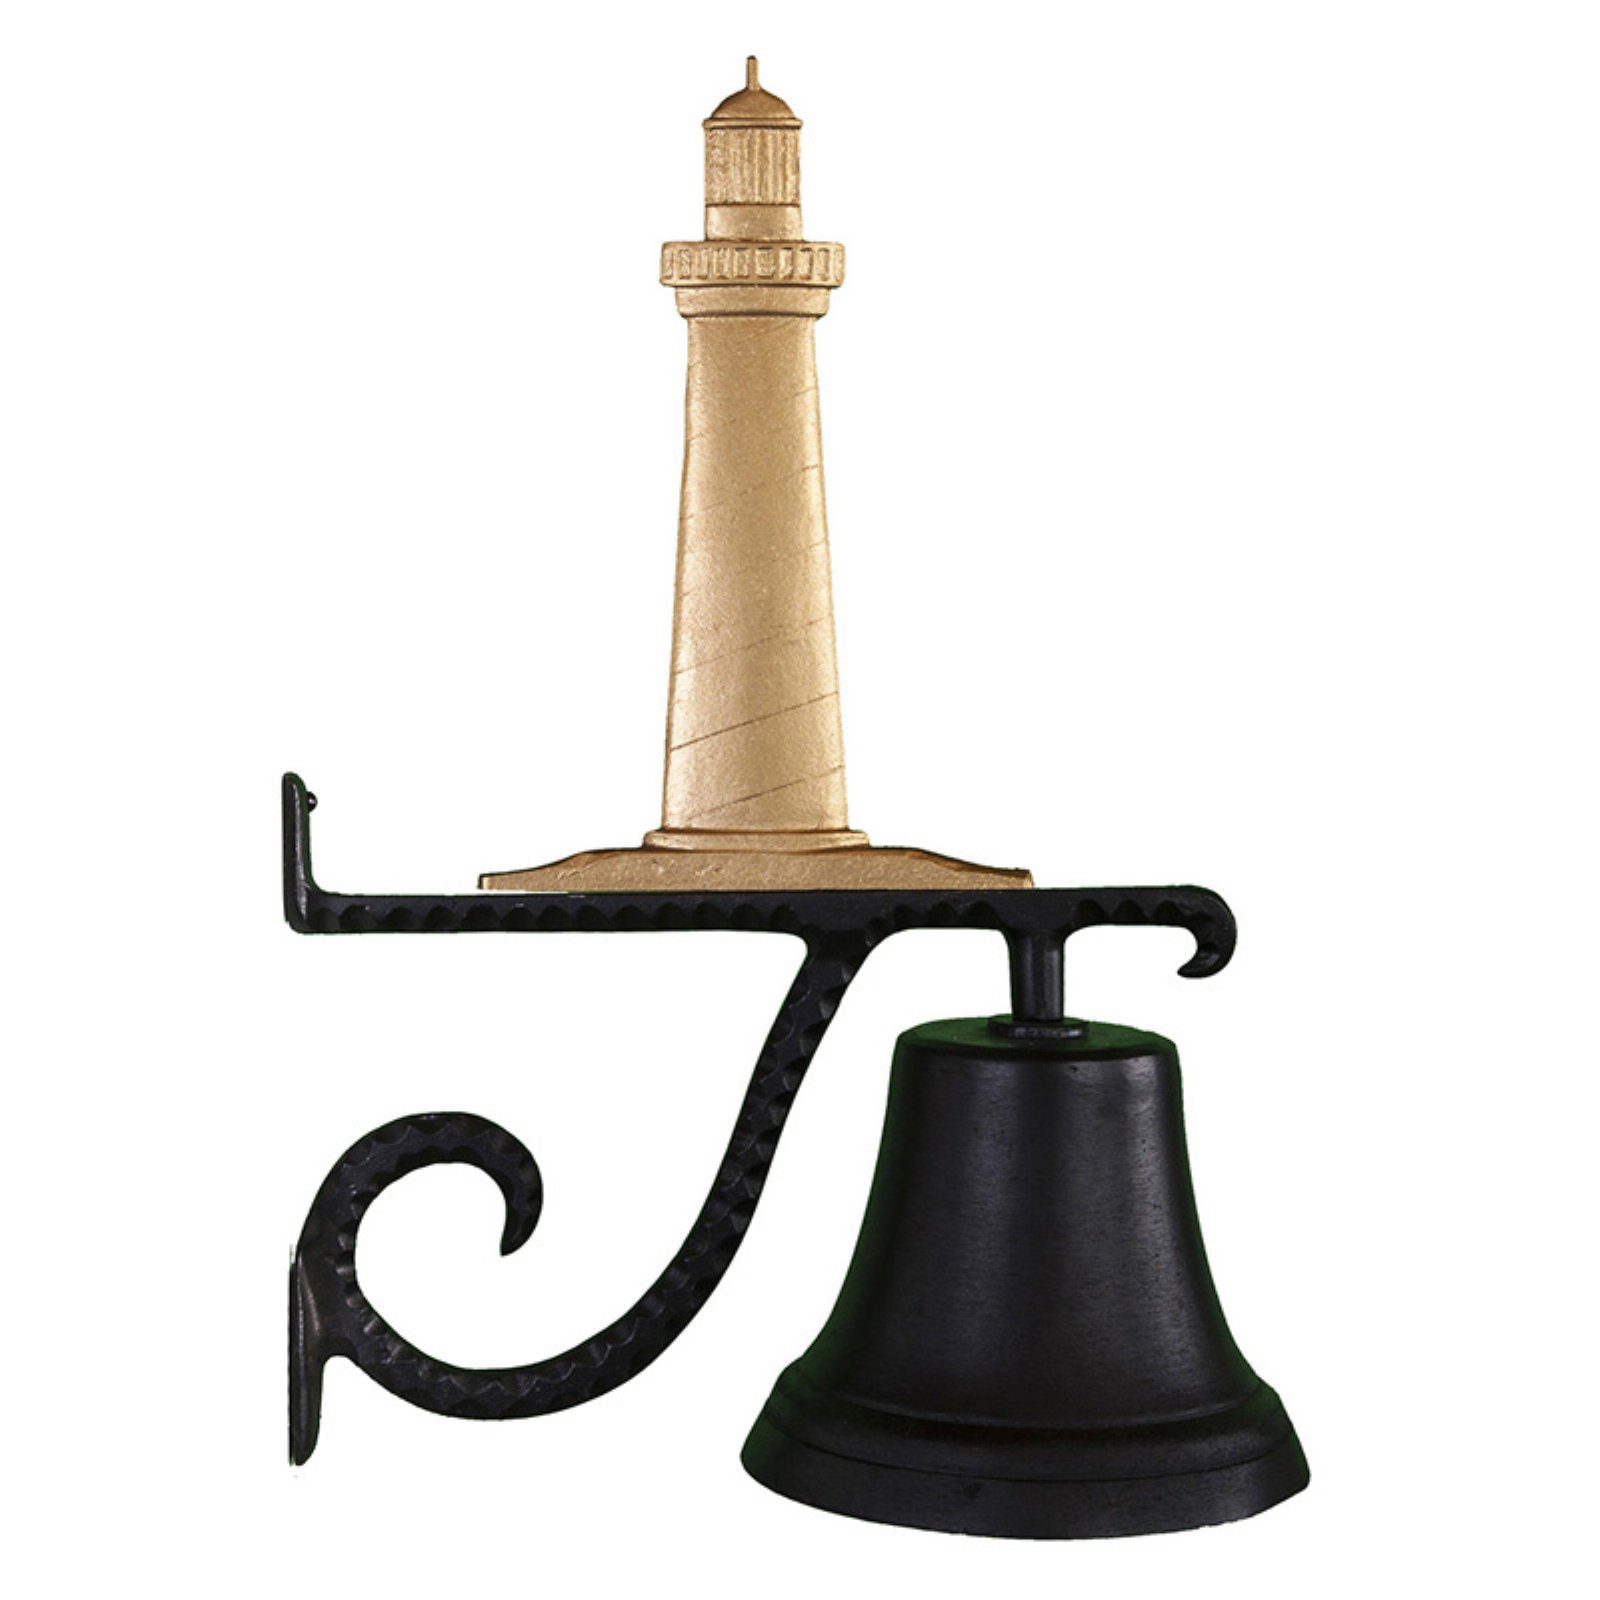 Cast Bell with Gold Cape Cod Lighthouse Ornament